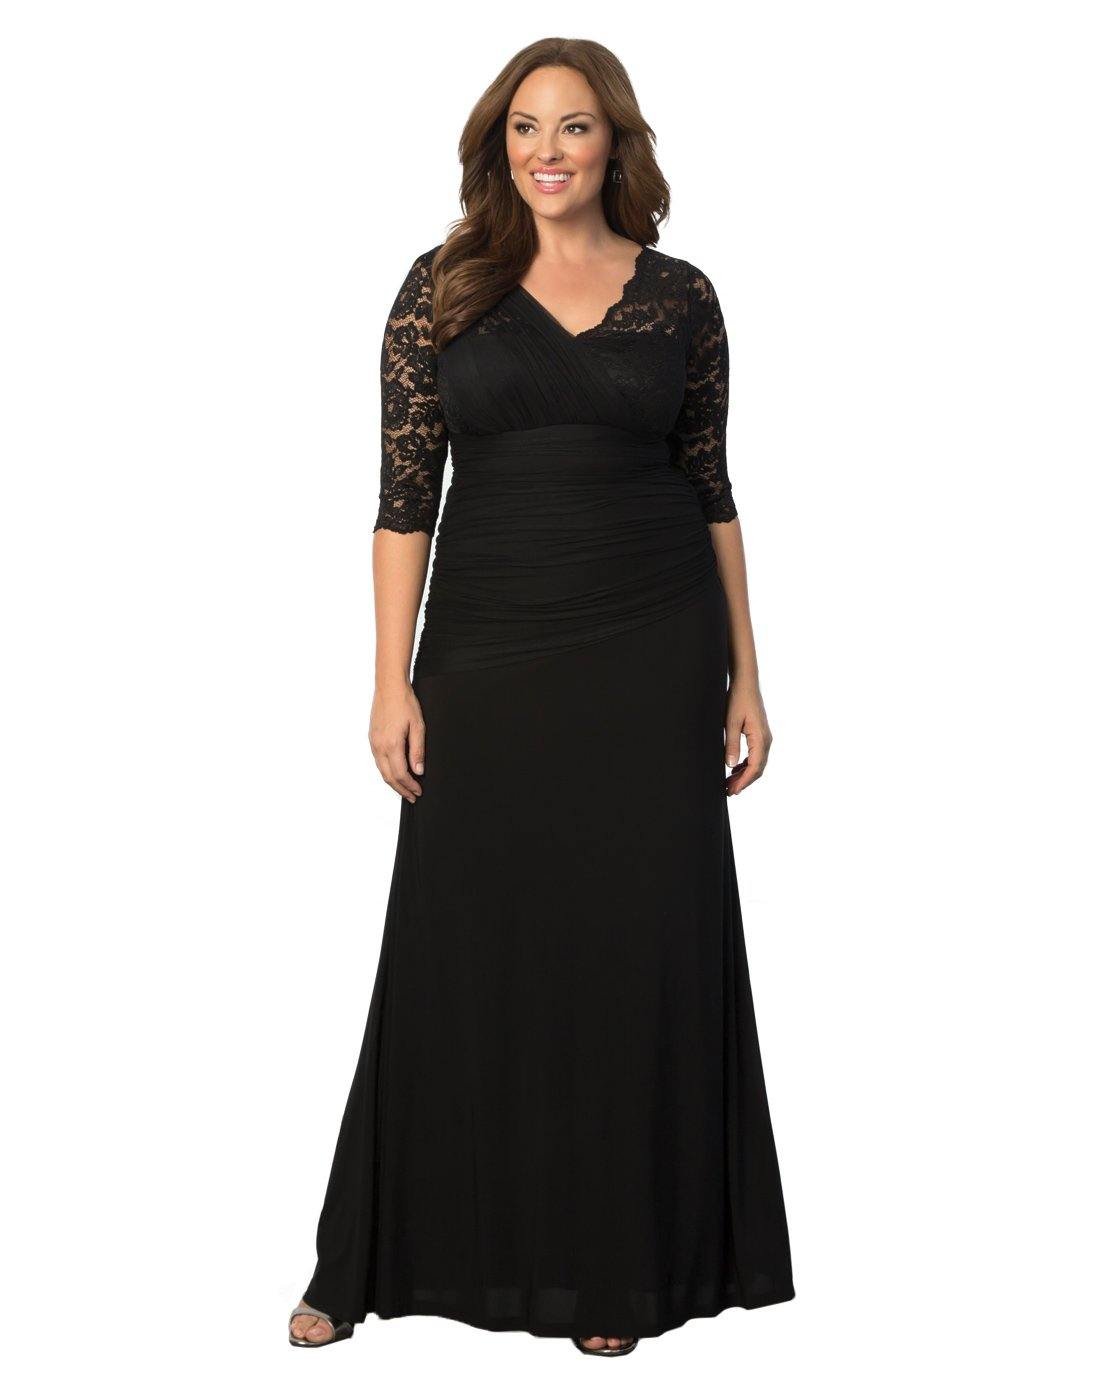 Kiyonna Women's Plus Size Soiree Evening Gown 2x Onyx by Kiyonna Clothing